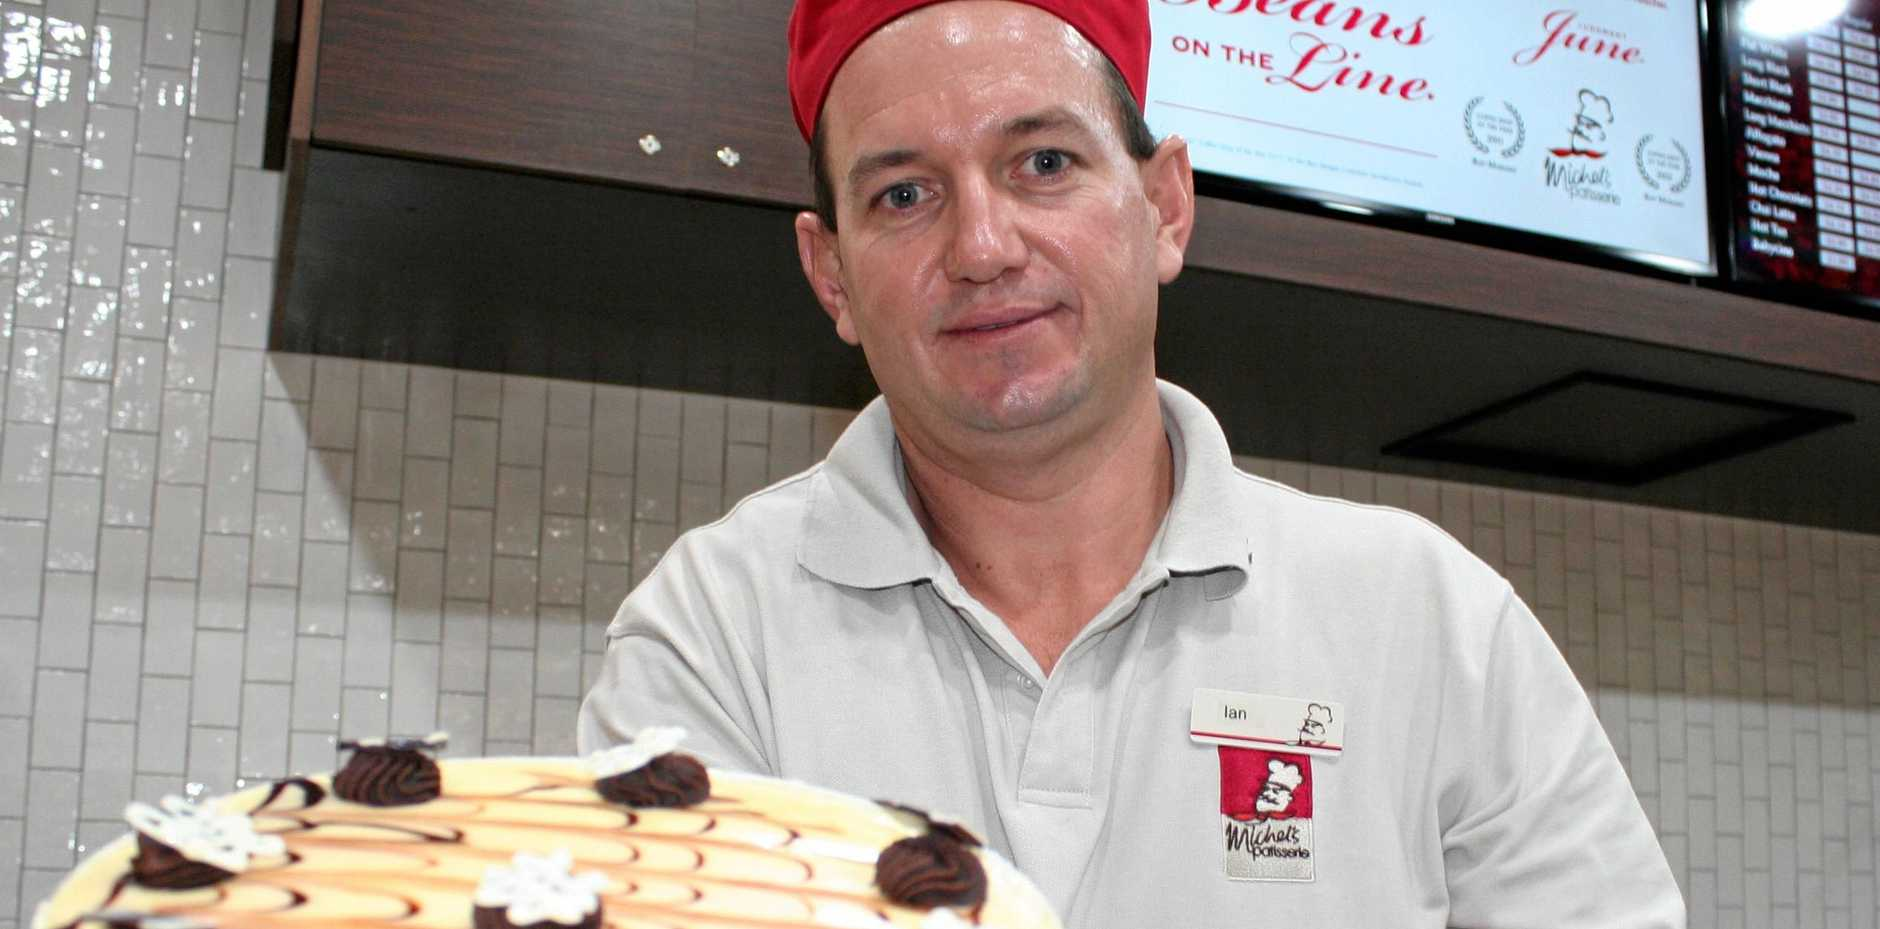 SLICE AND SERVE: Michel Patisserie owner/manager puts forward his most delicate and decadent mud swirl cake. Austin King / The Morning Bulletin